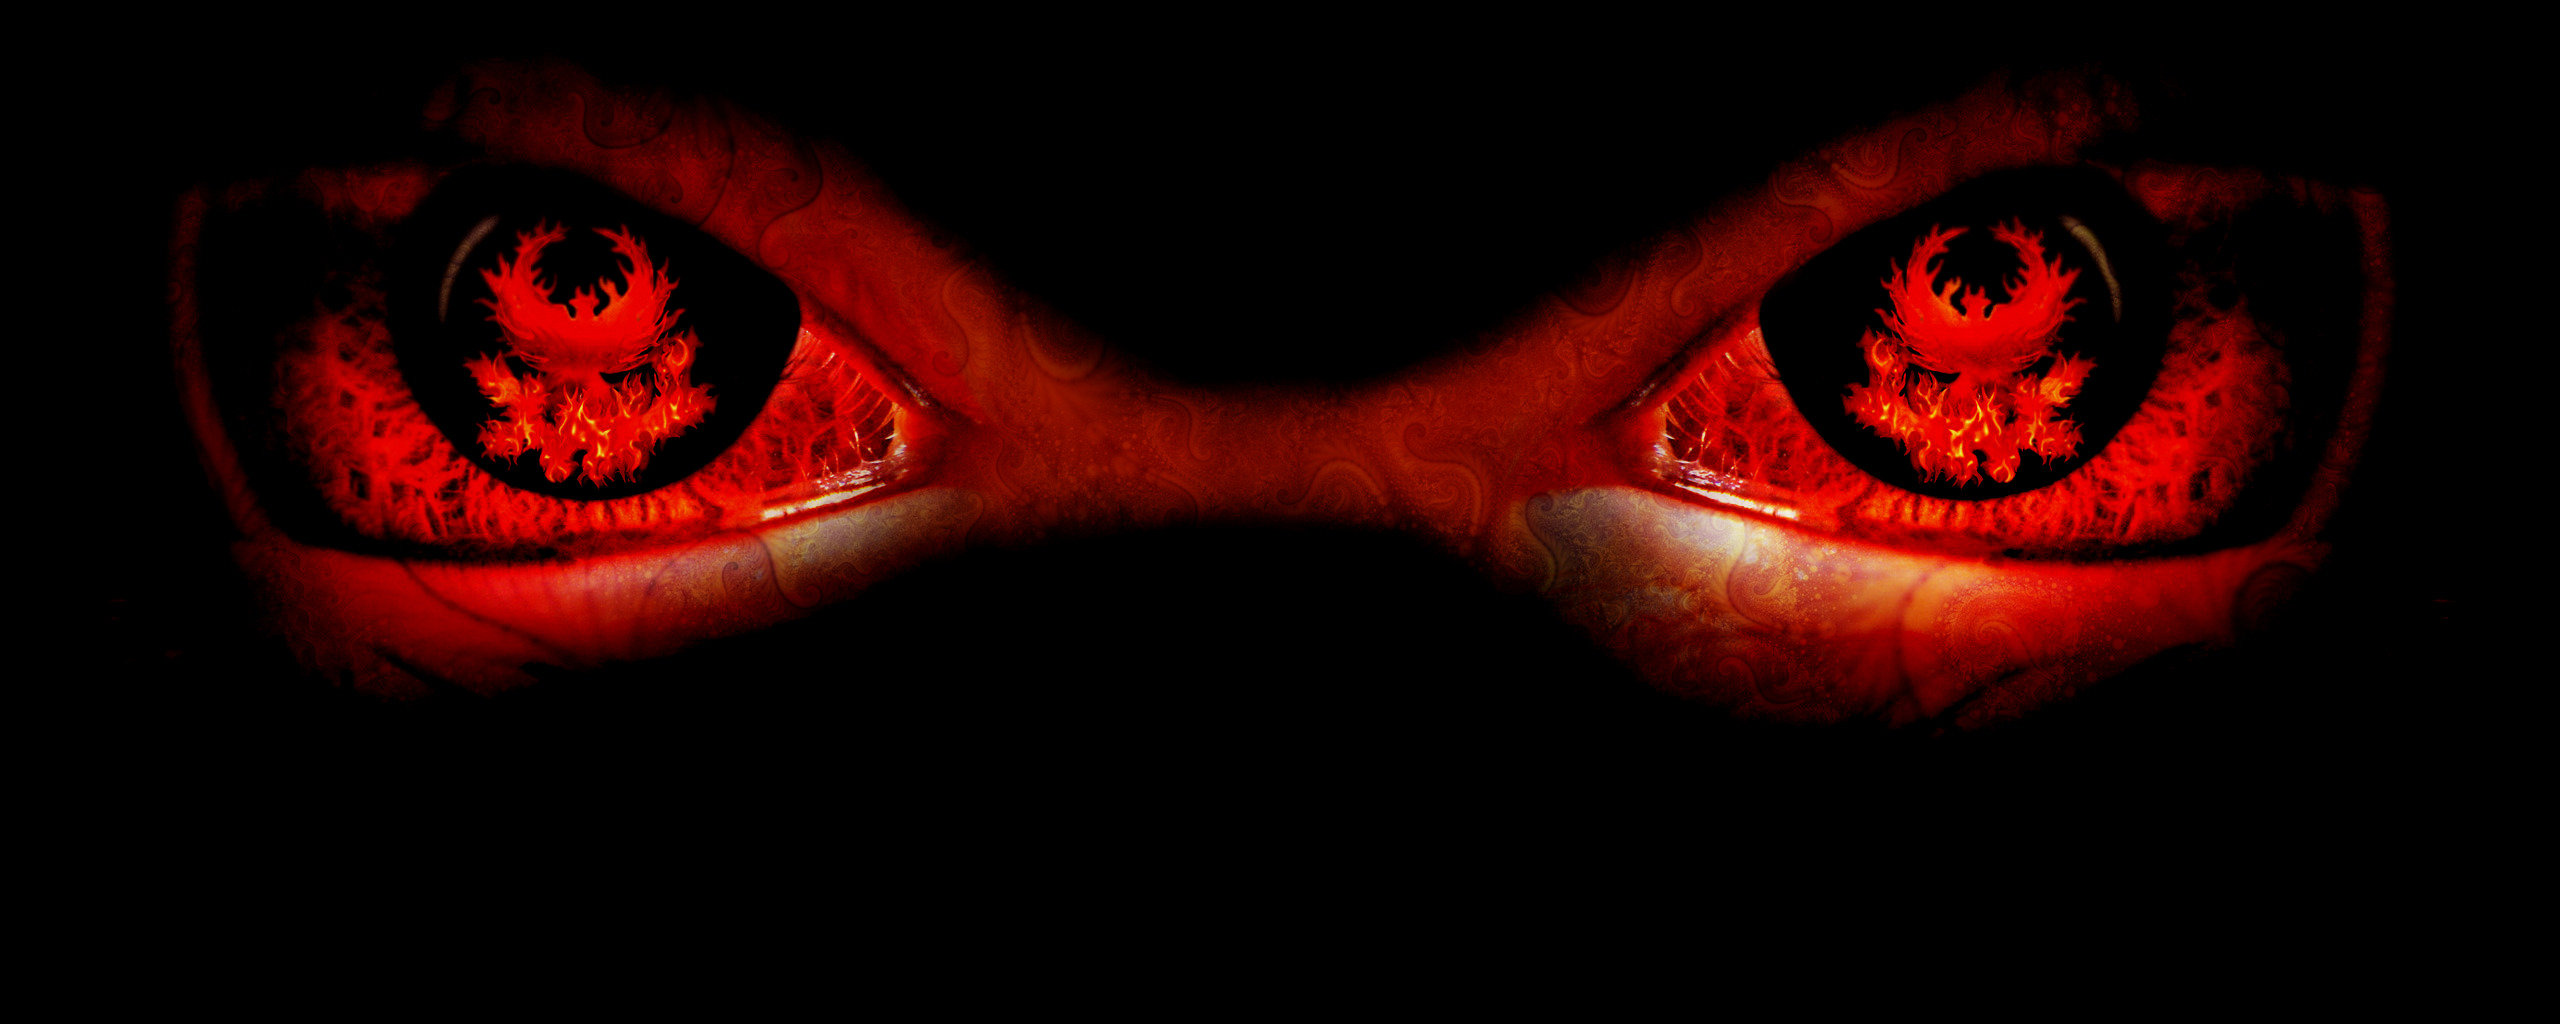 Evil Eyes Wallpaper - WallpaperSafari